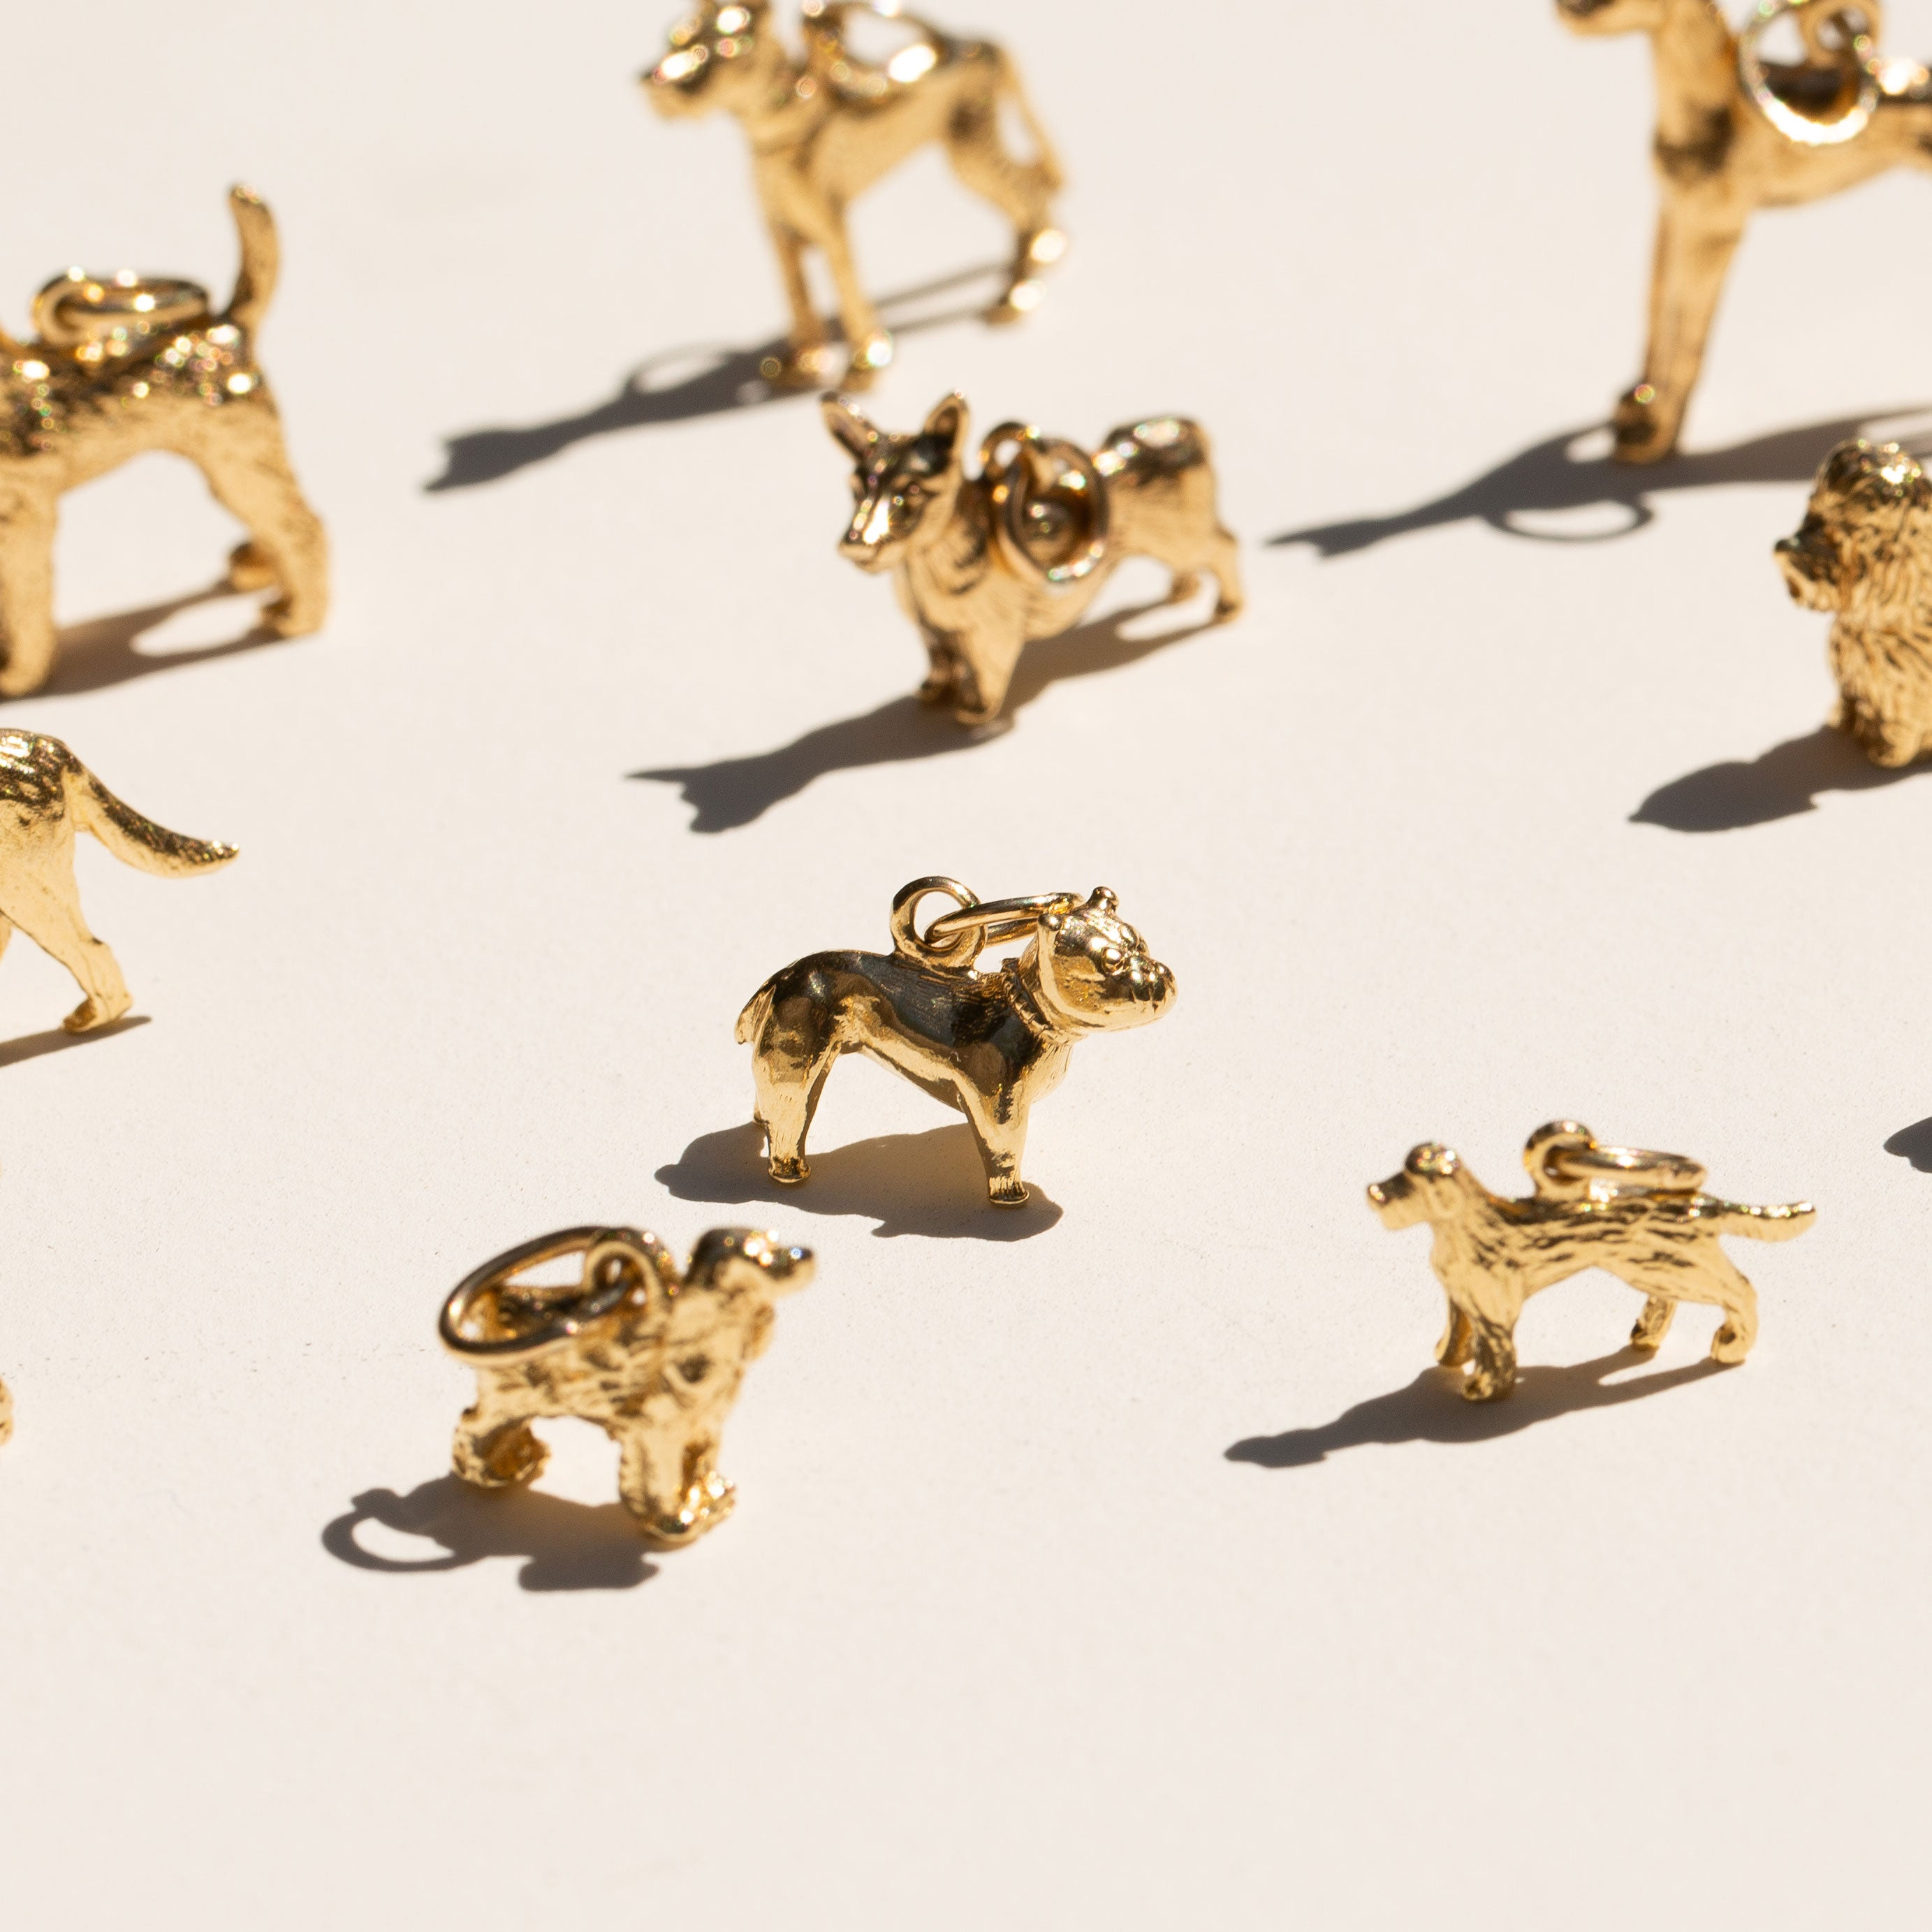 Bulldog 10K Gold Dog Charm